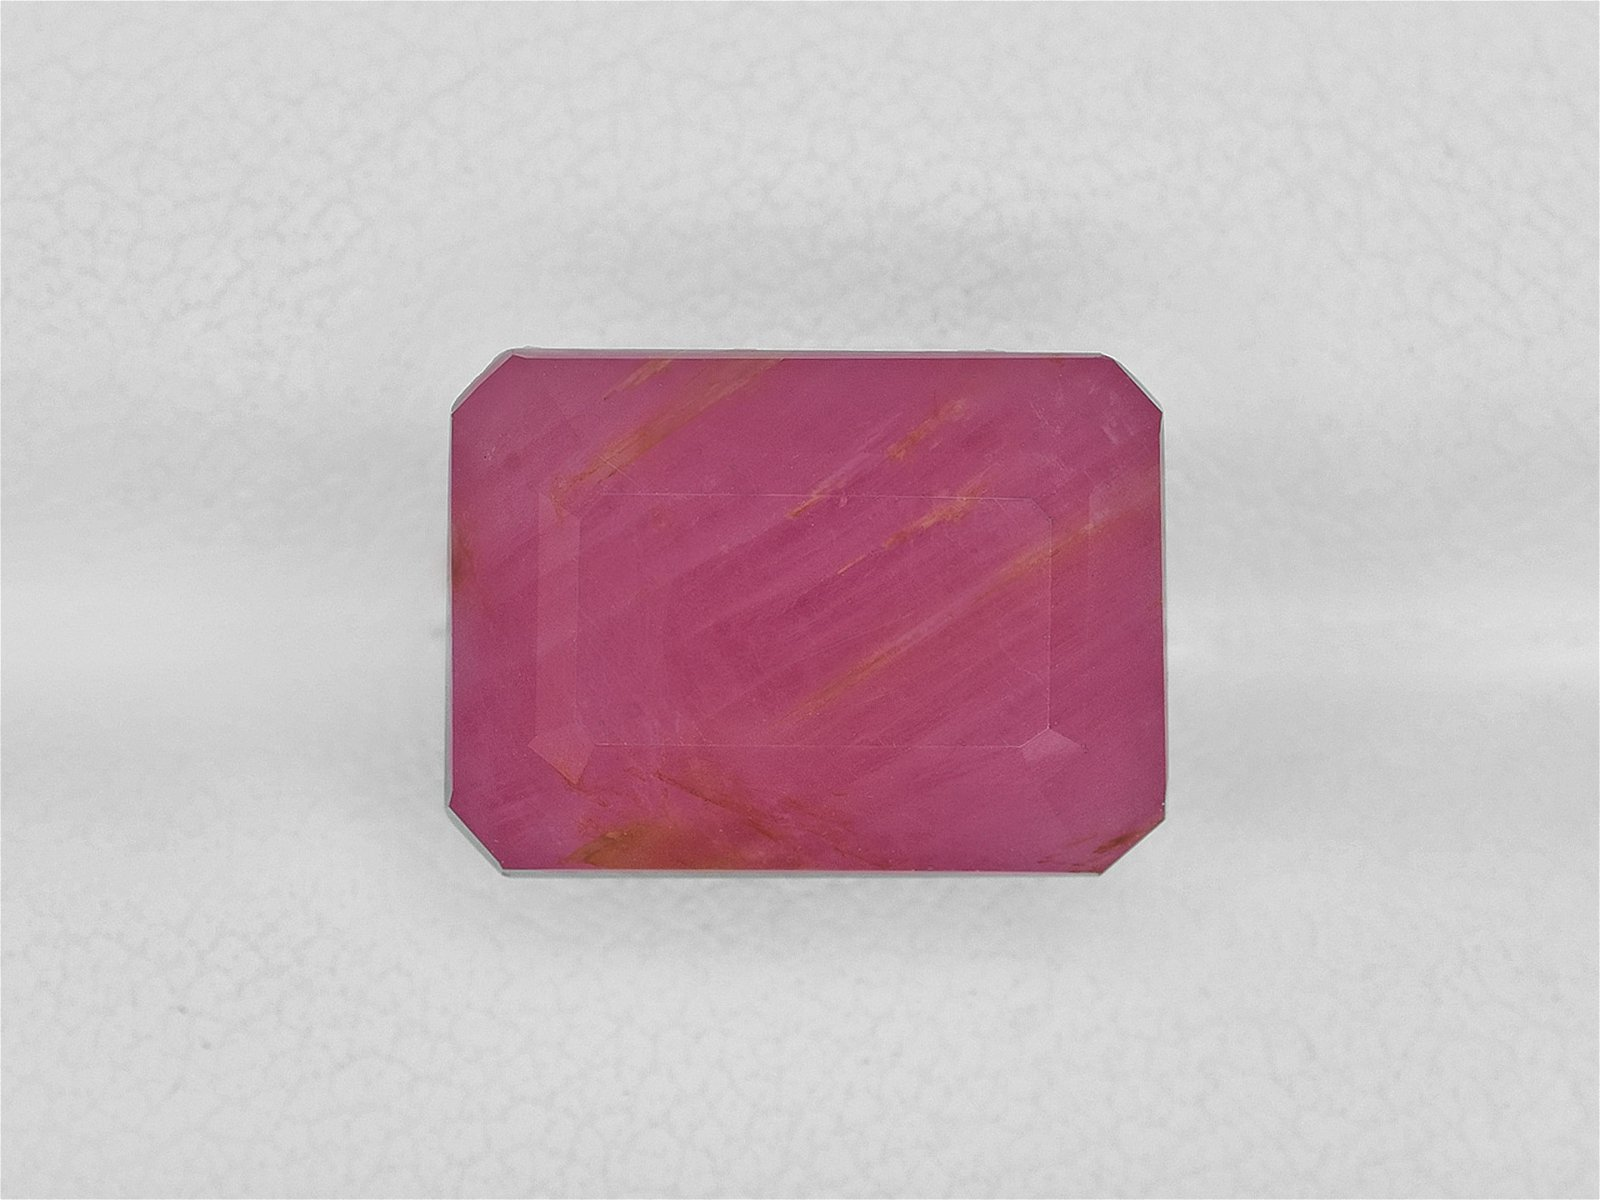 Ruby, 13.33ct, Mined in Guinea, Certified by IGI